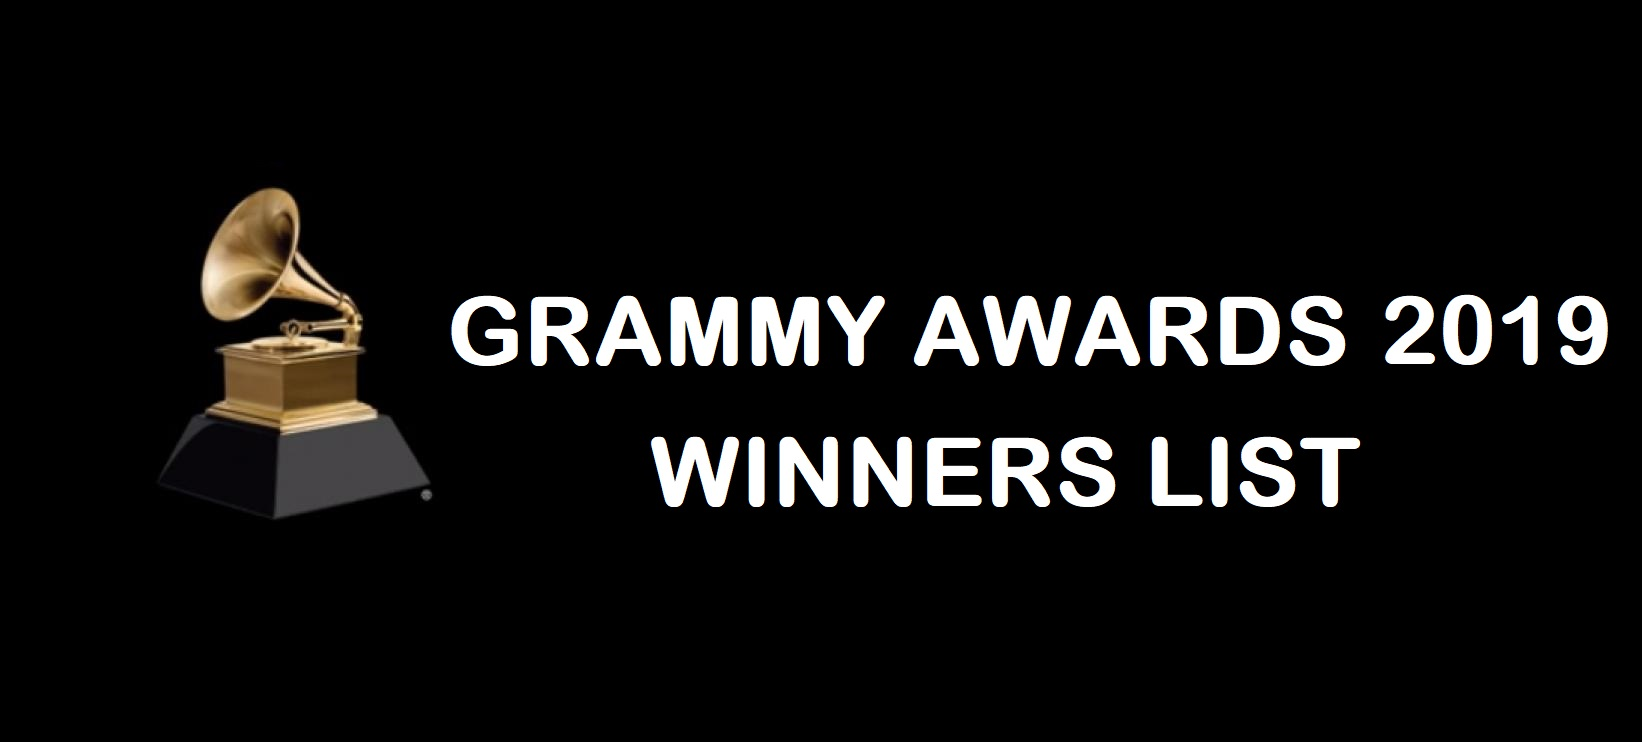 Grammys 2019 Winners List